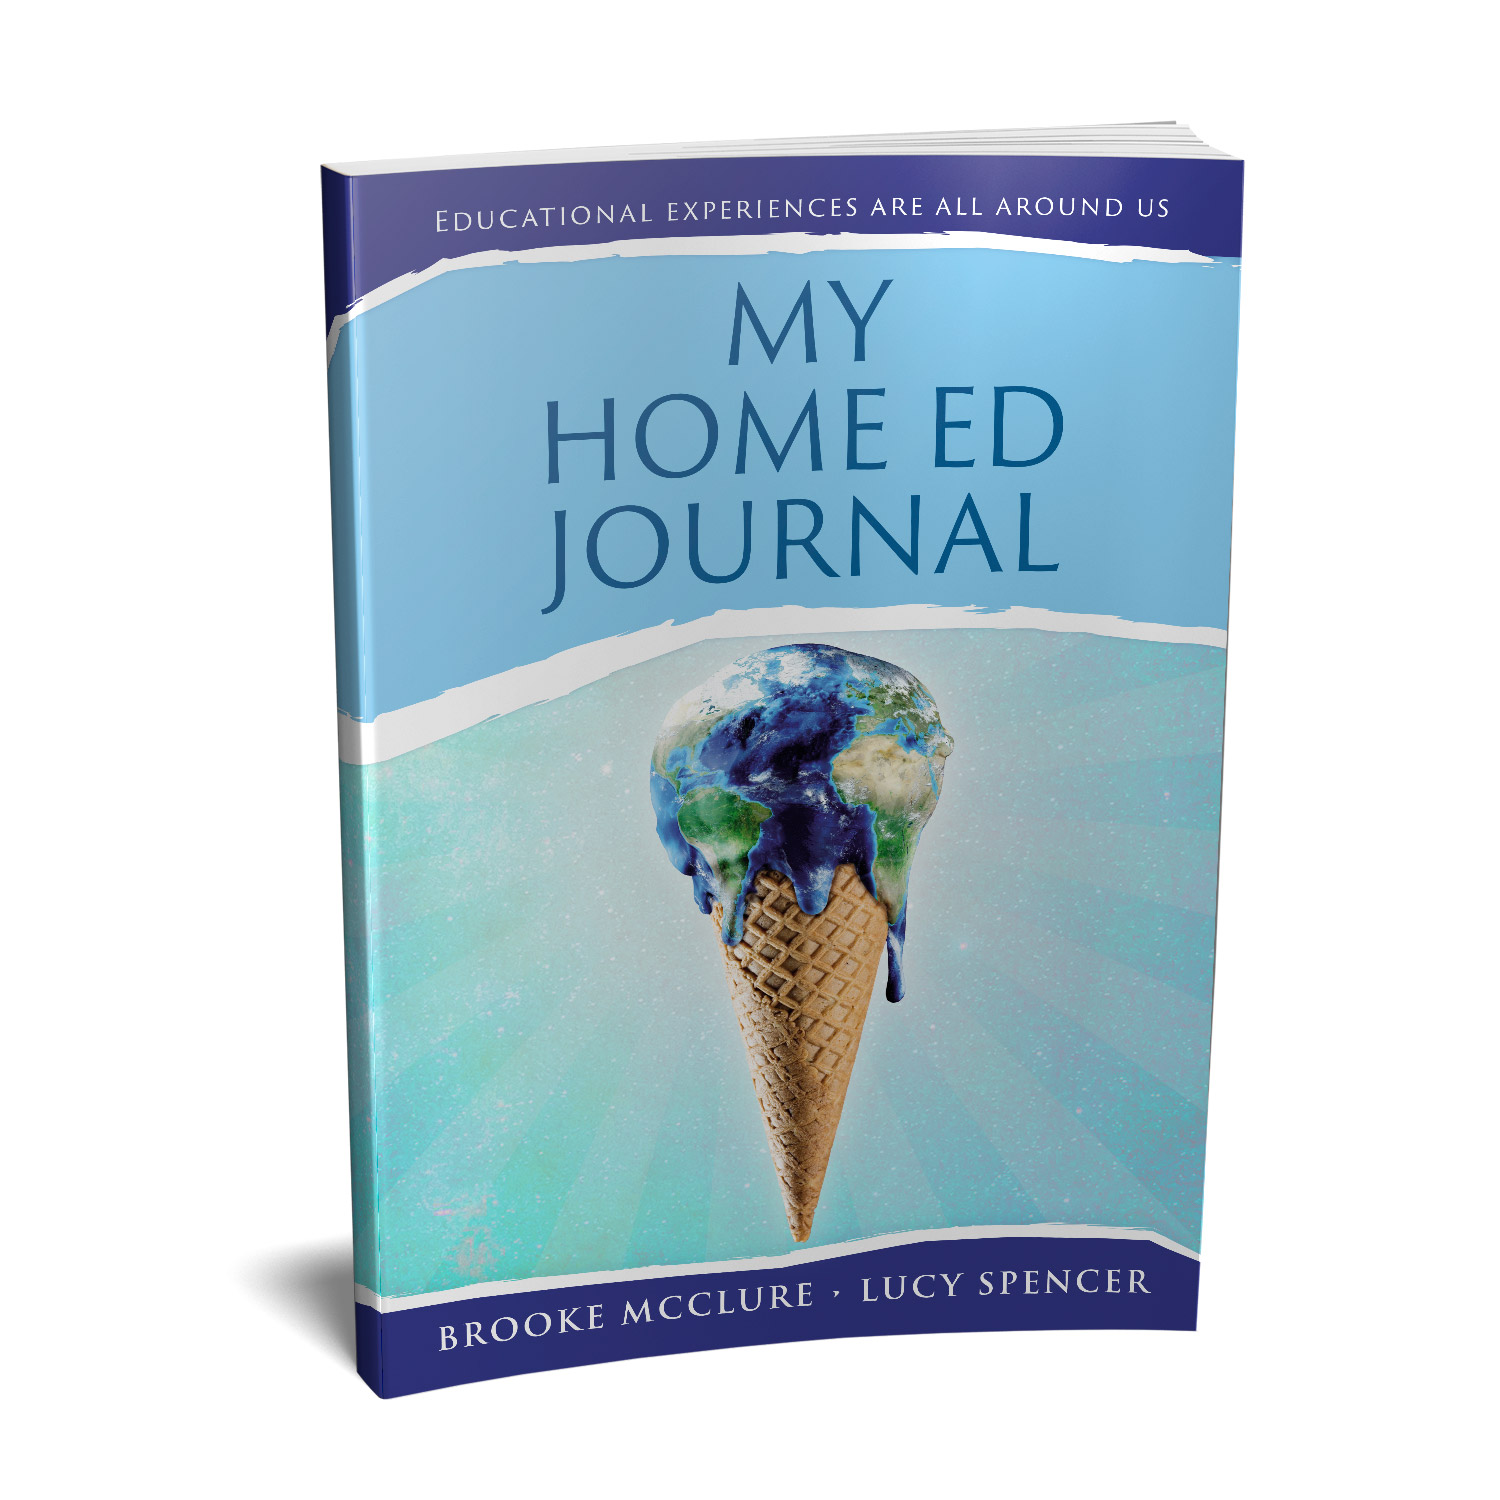 'My Home Ed Journal' is a unique, educational tool that tracks the progress of home-educated children. The authors are Brooke McClure and Lucy Spencer. The book cover and interior design are by Mark Thomas. To learn more about what Mark could do for your book, please visit coverness.com.